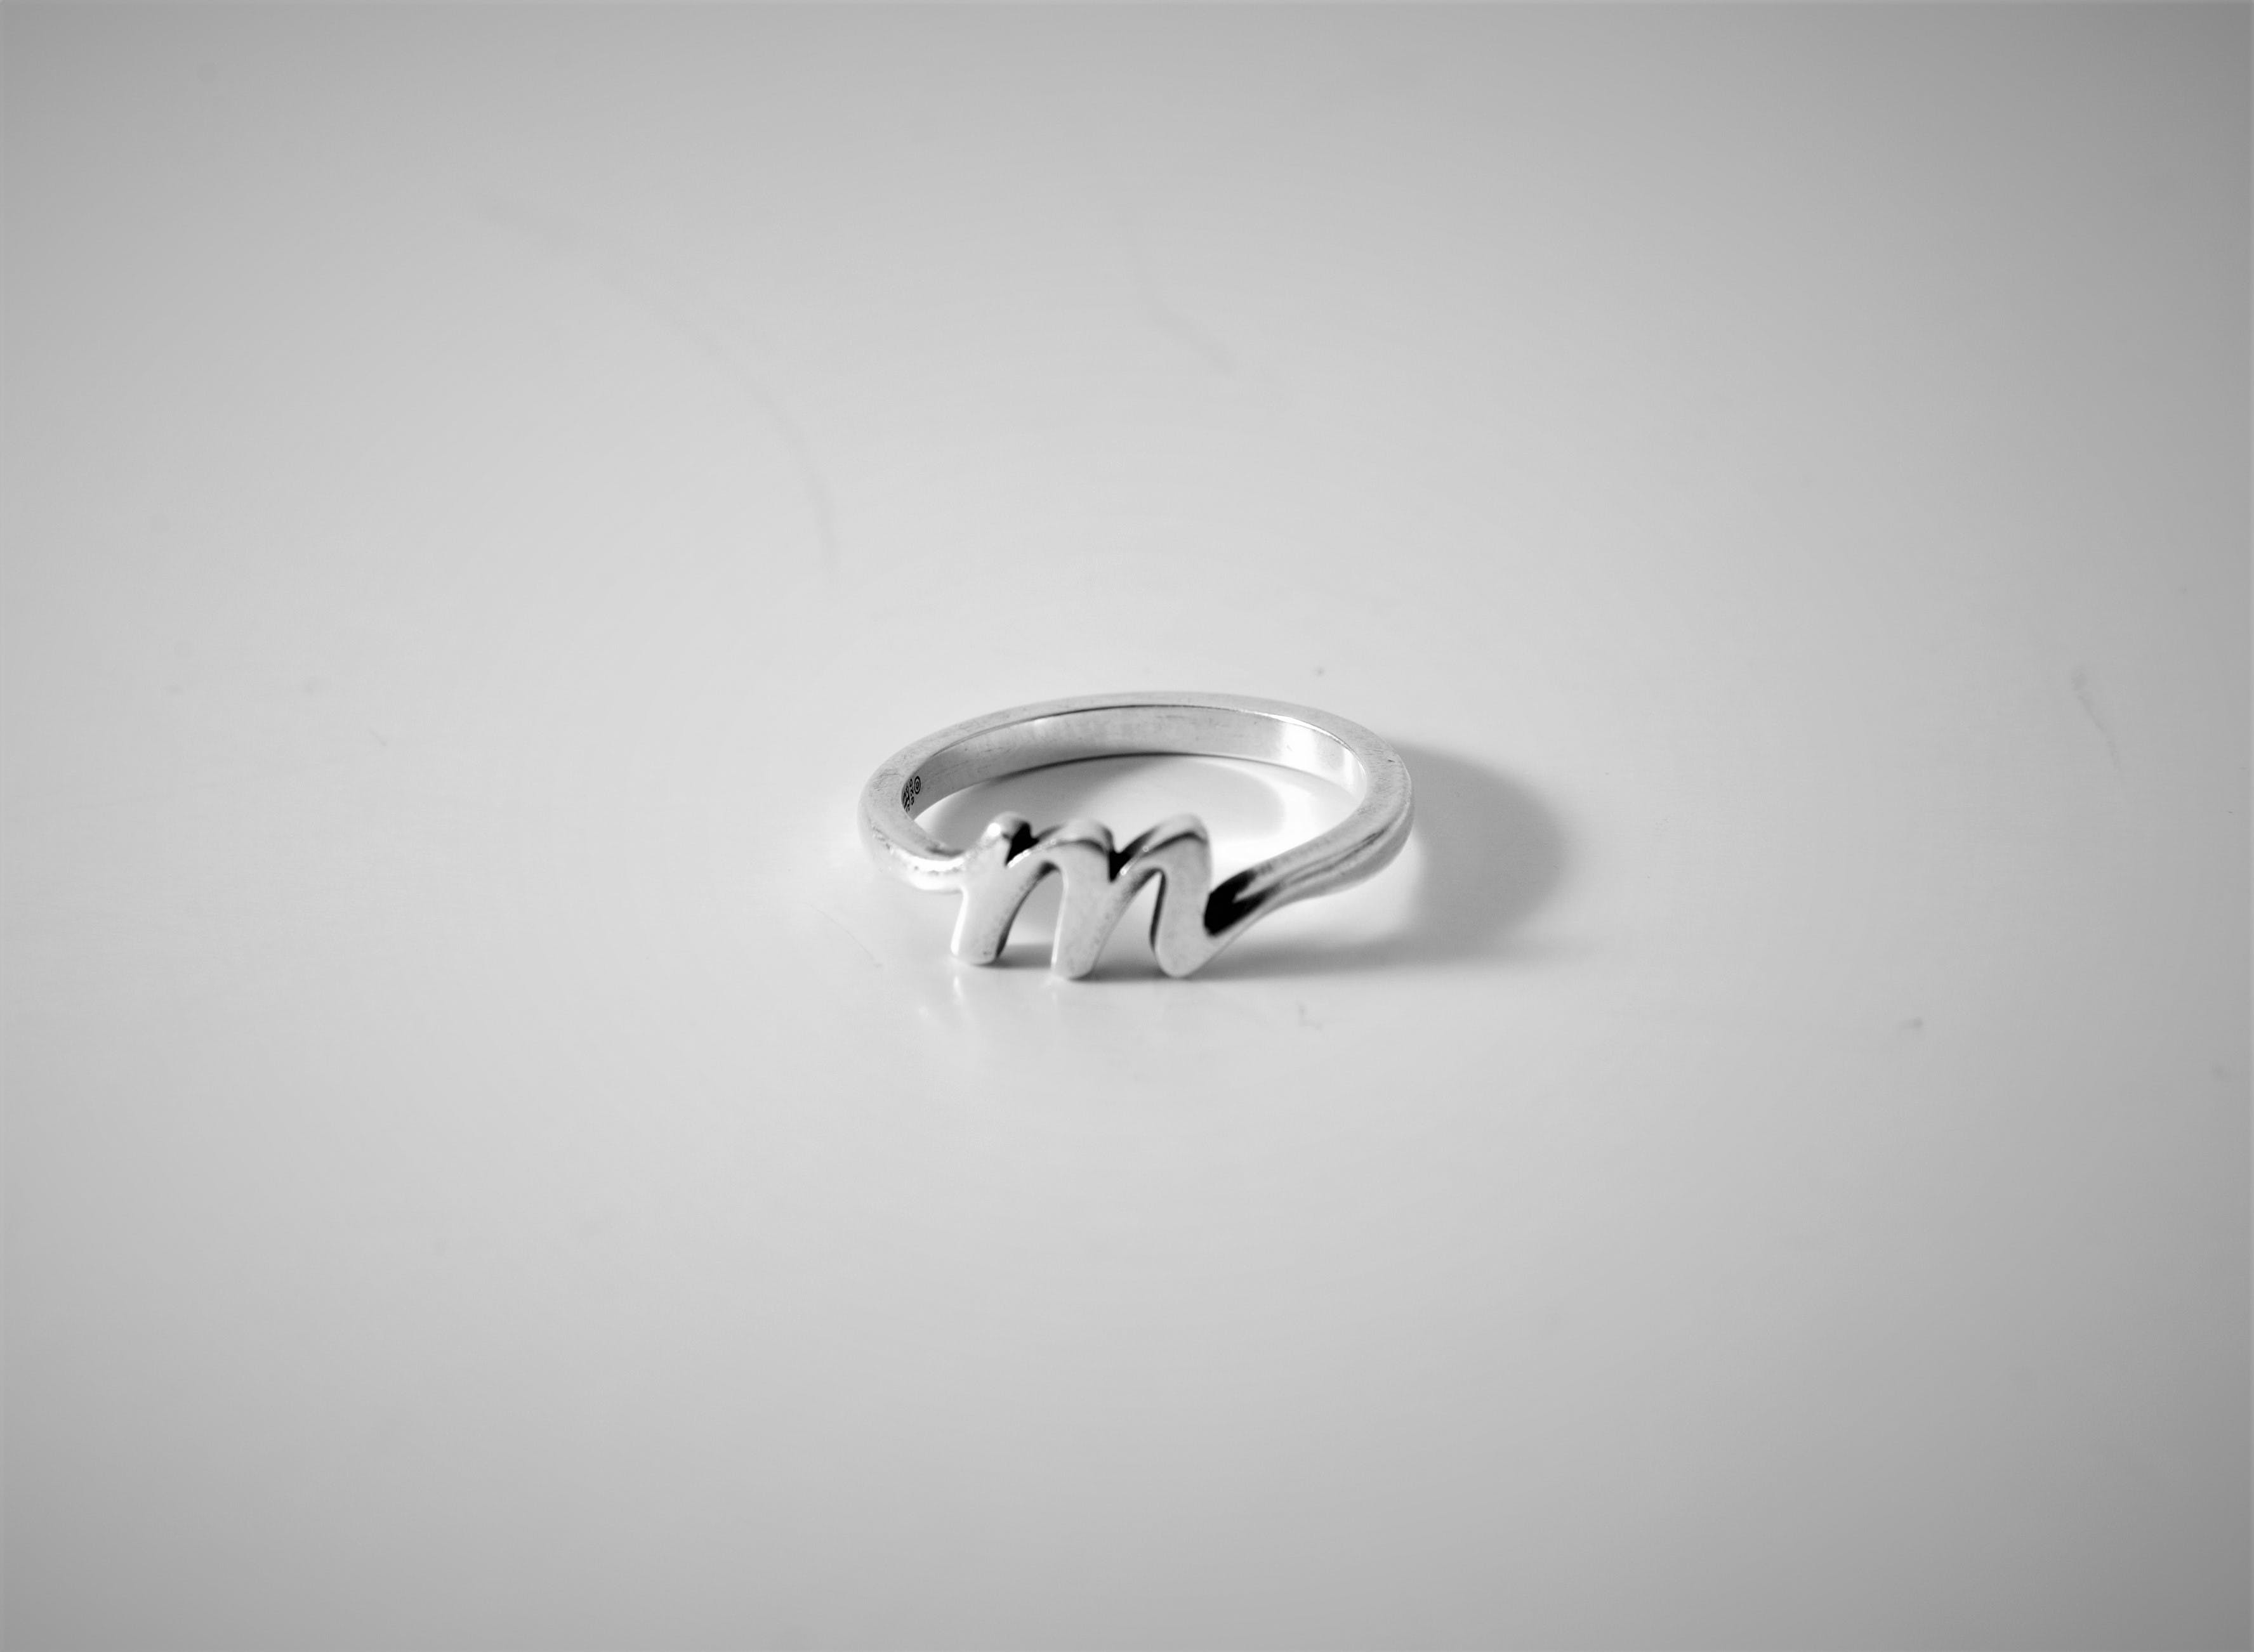 Free stock photo of white, letter, ring, jewelry